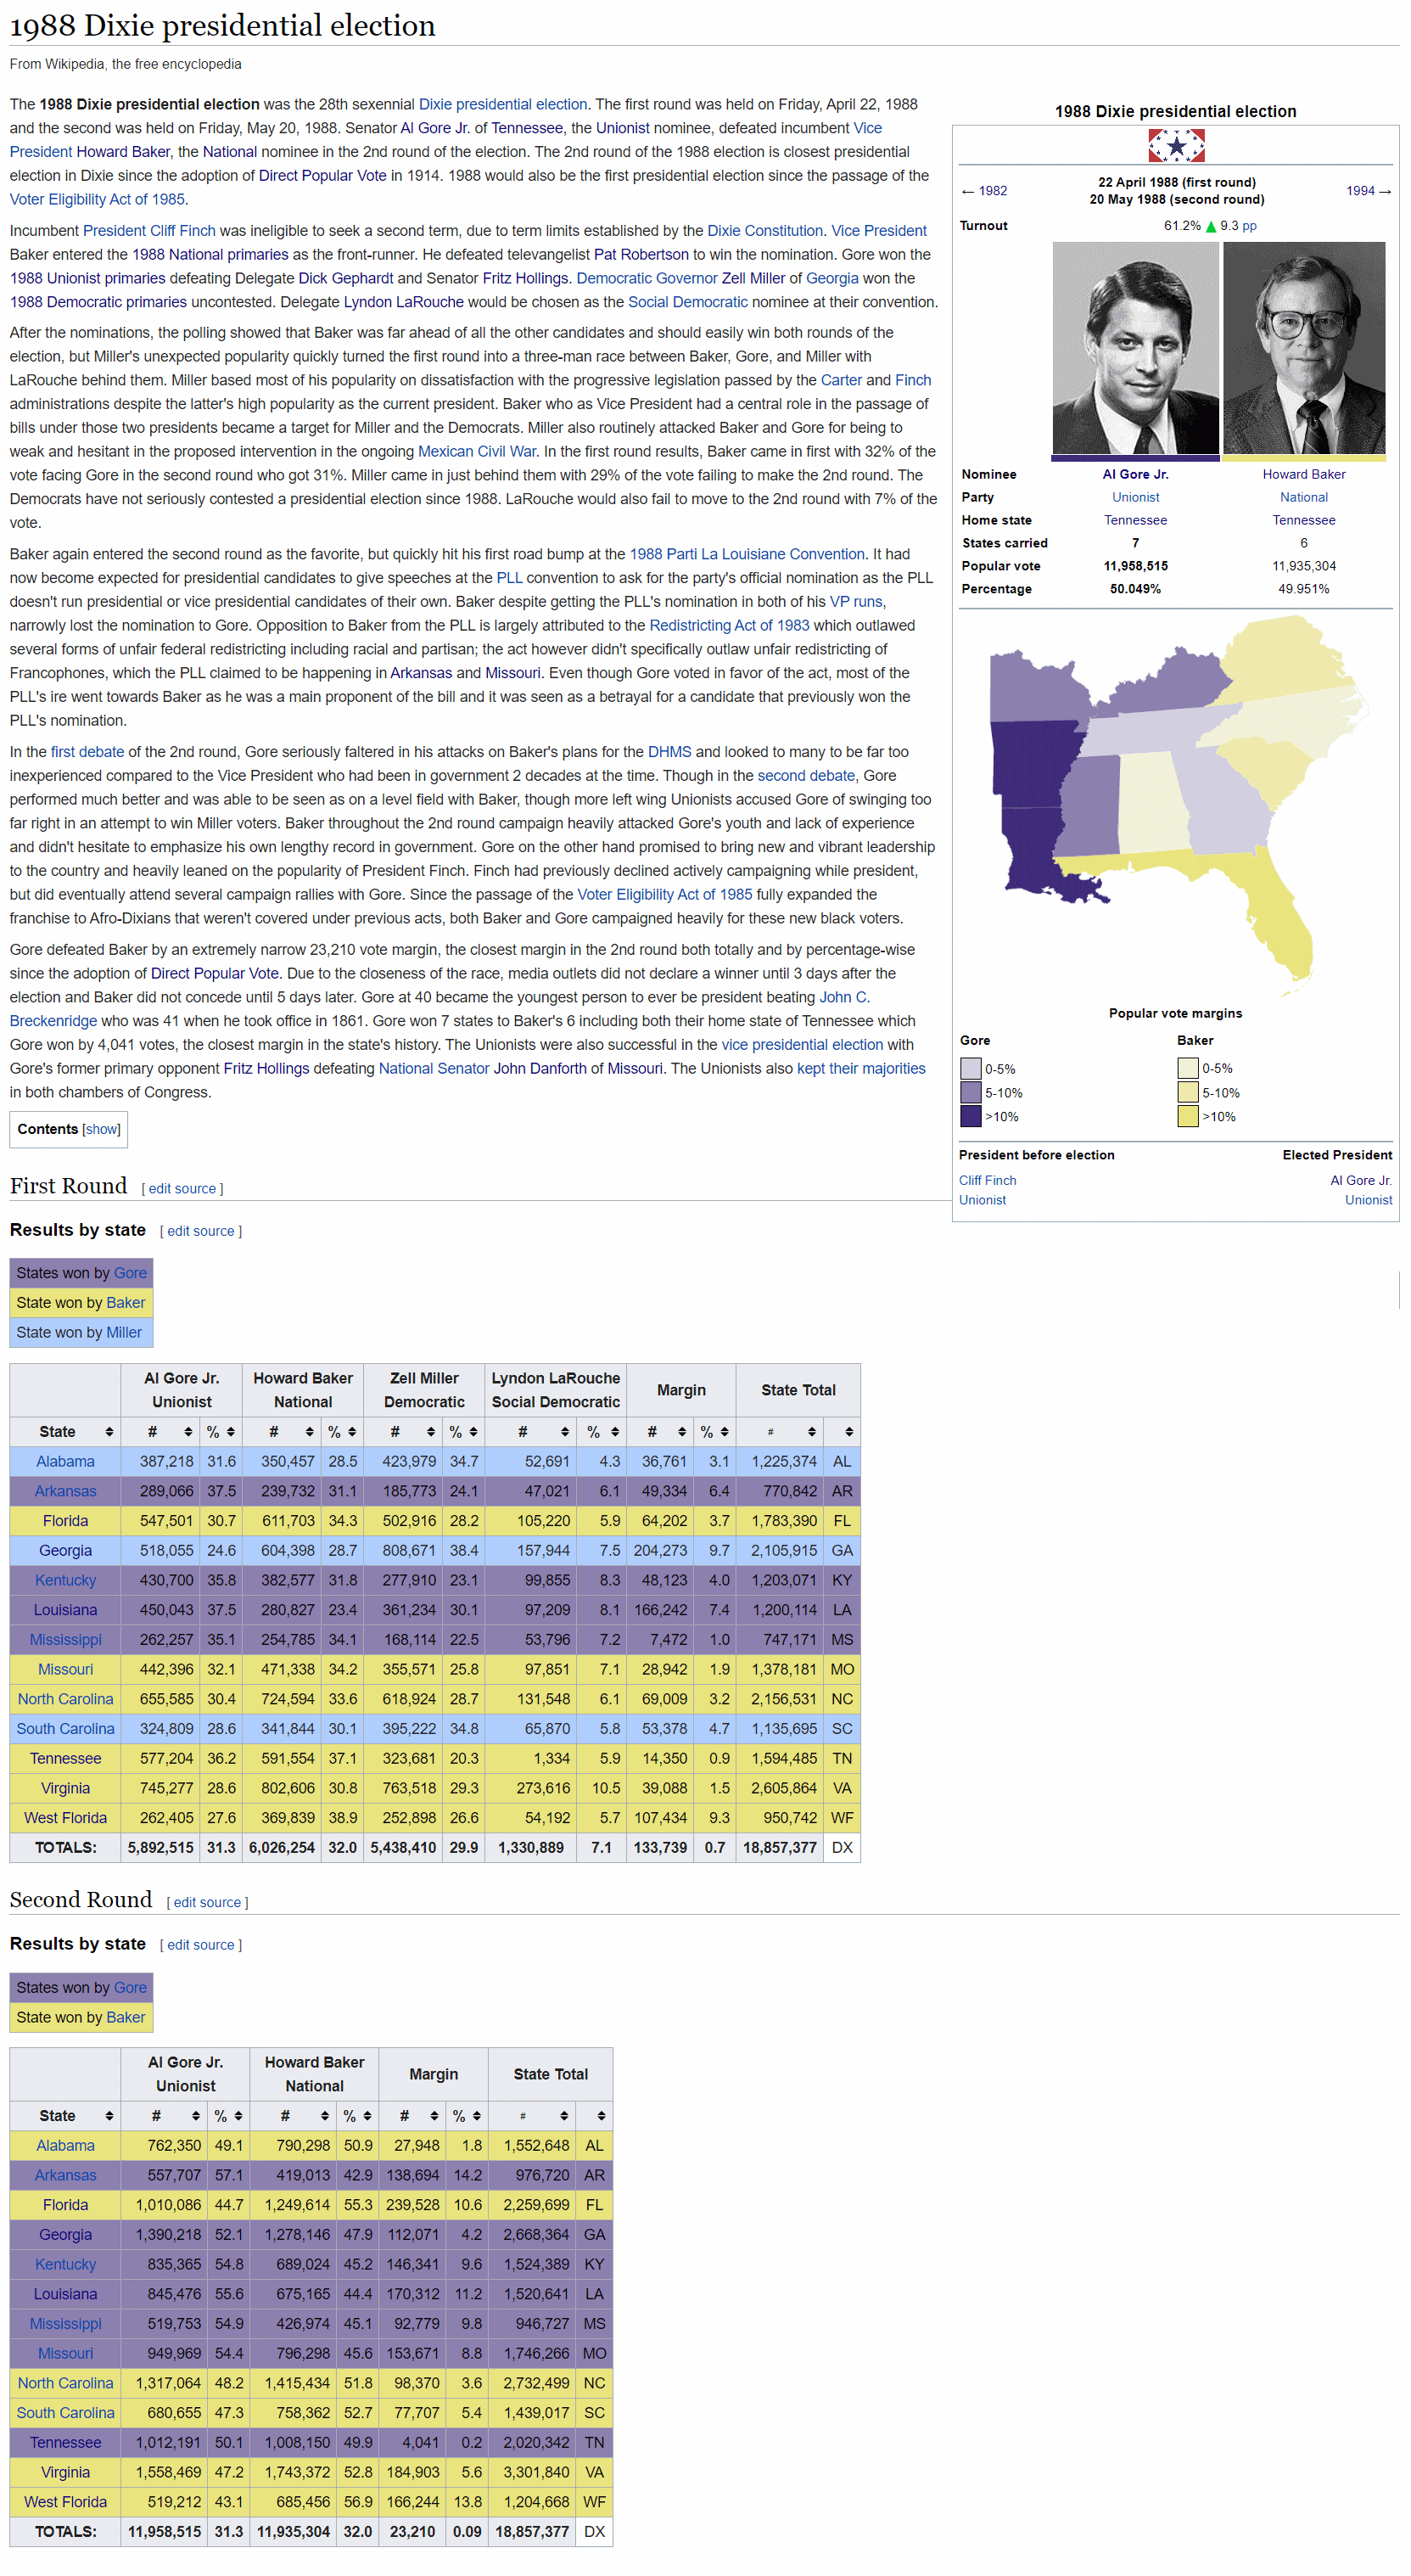 1988 Presidential Election Wiki 2.png